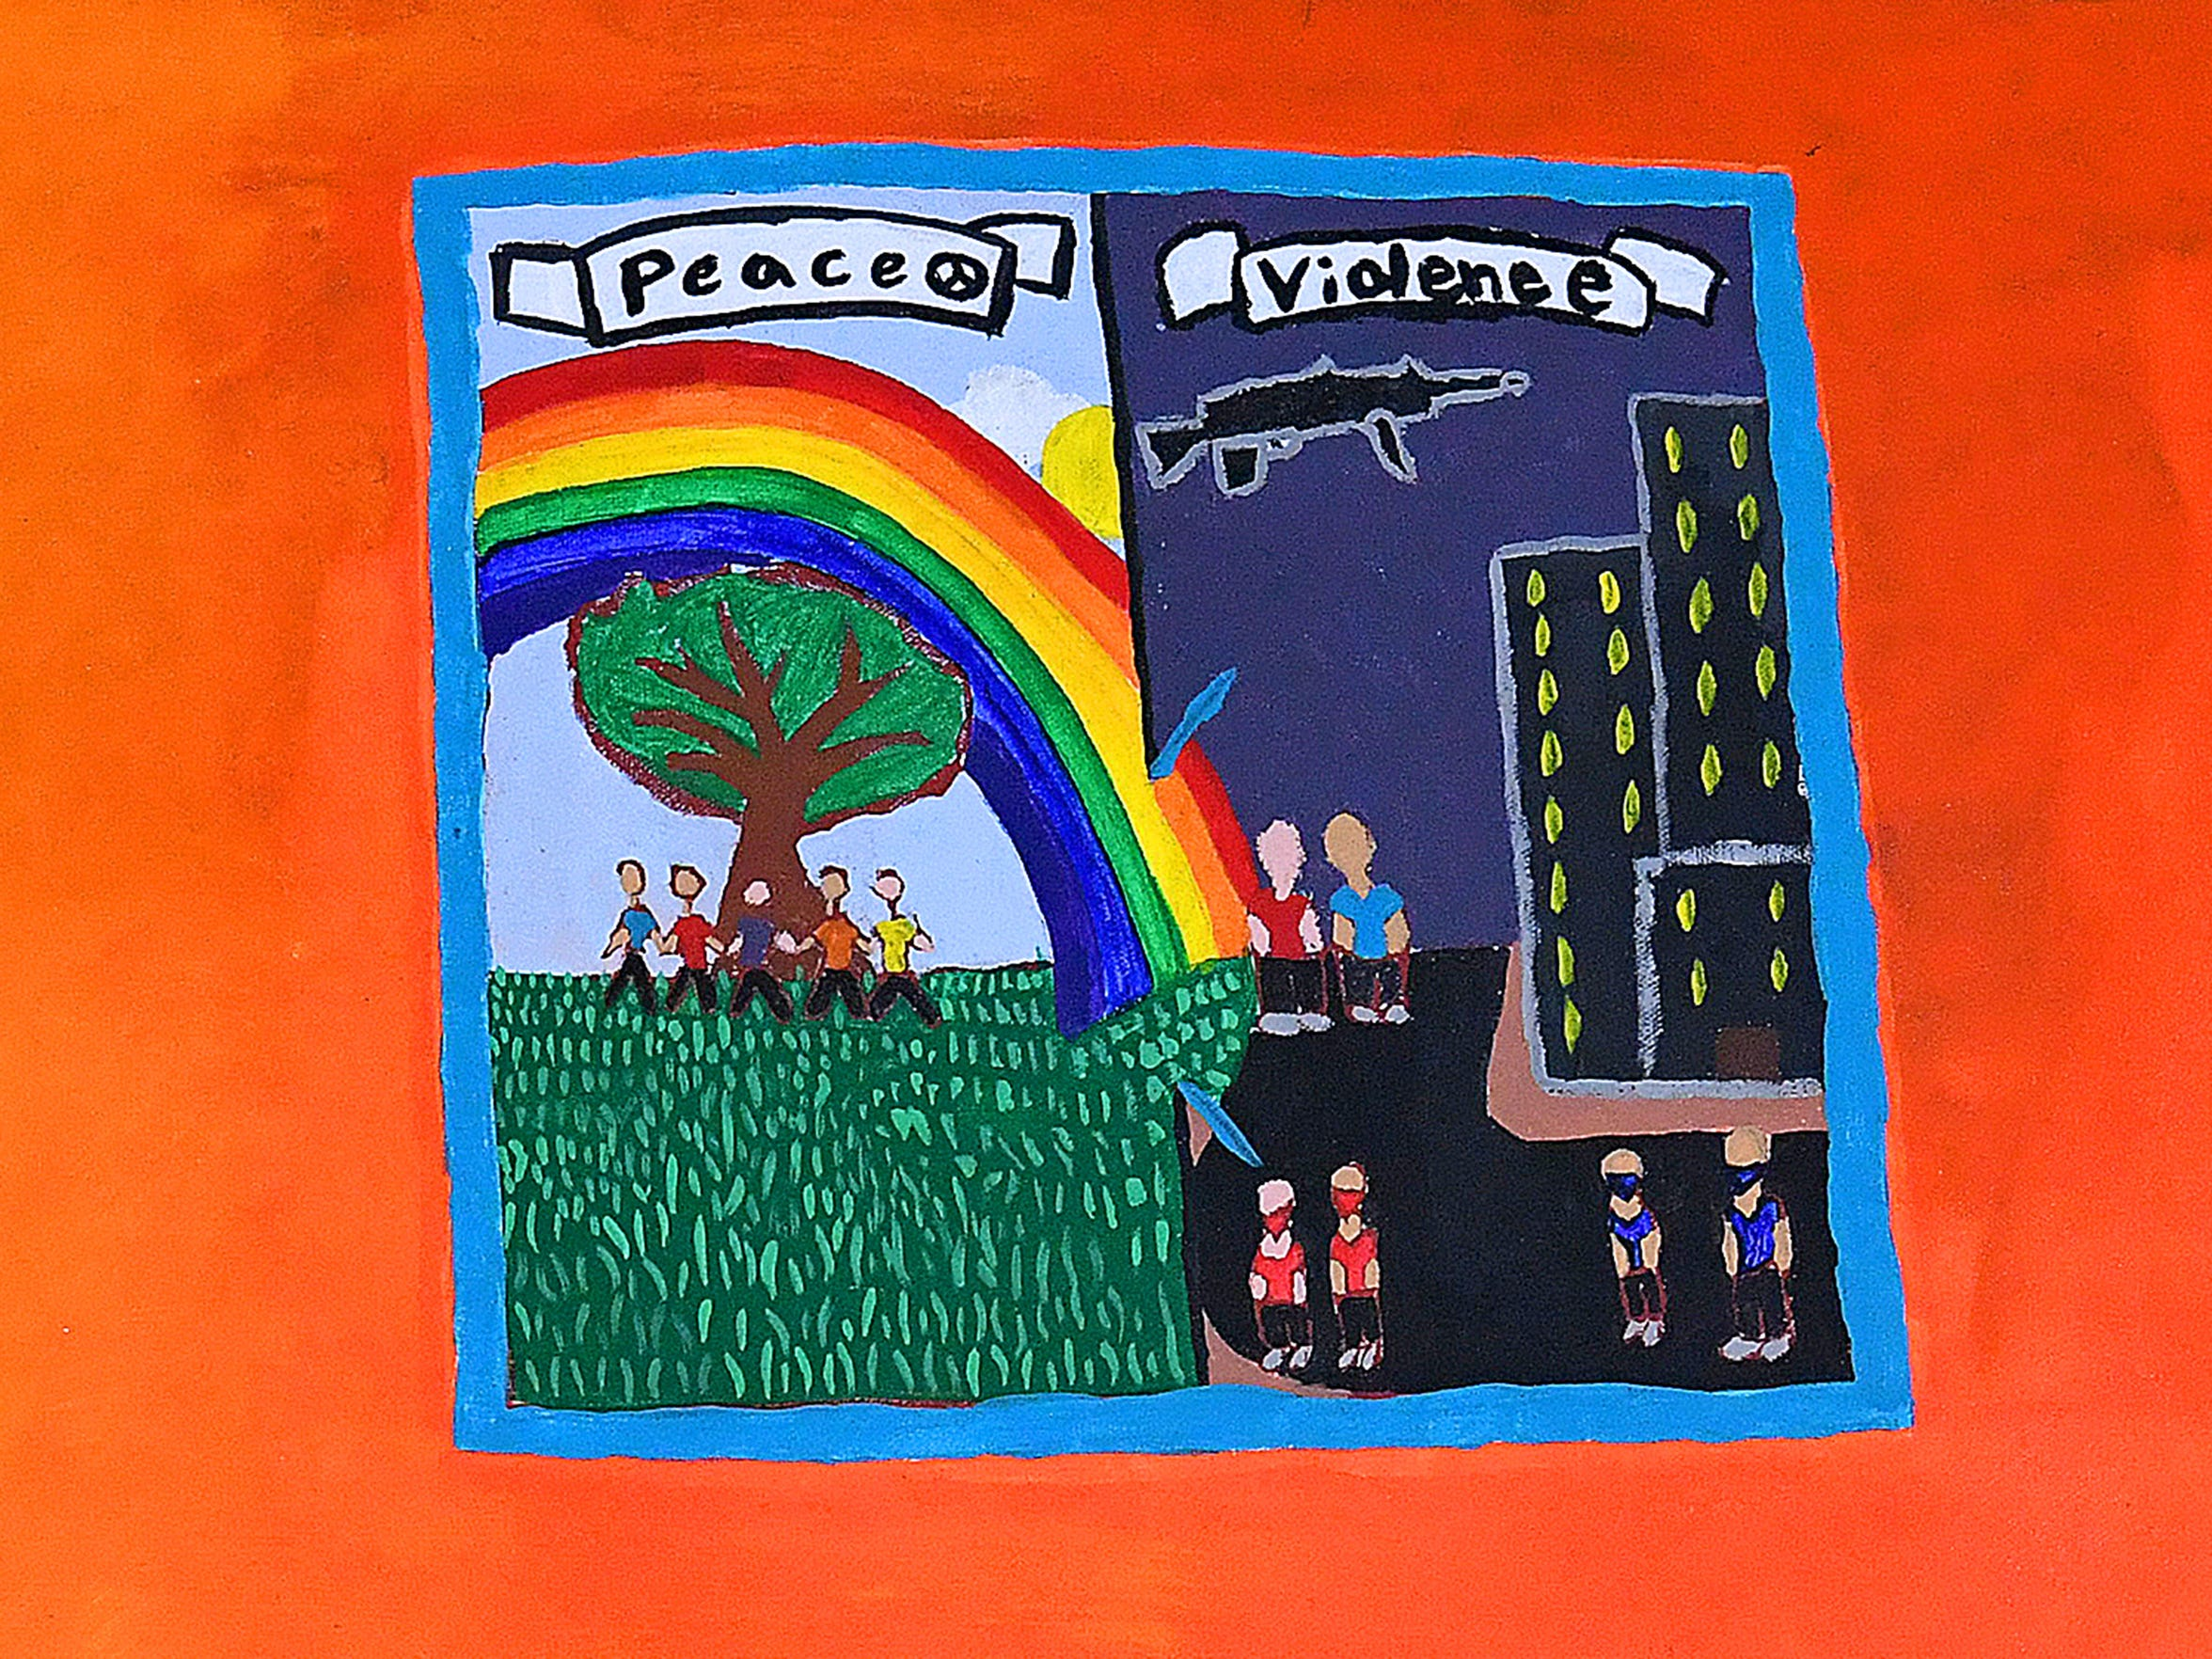 A local youth contributed this image to the Train of Dreams mural created by unaccompanied youth housed in a secure detention center in Augusta County. It depicts the choice between violence and peace that each person must make each day.